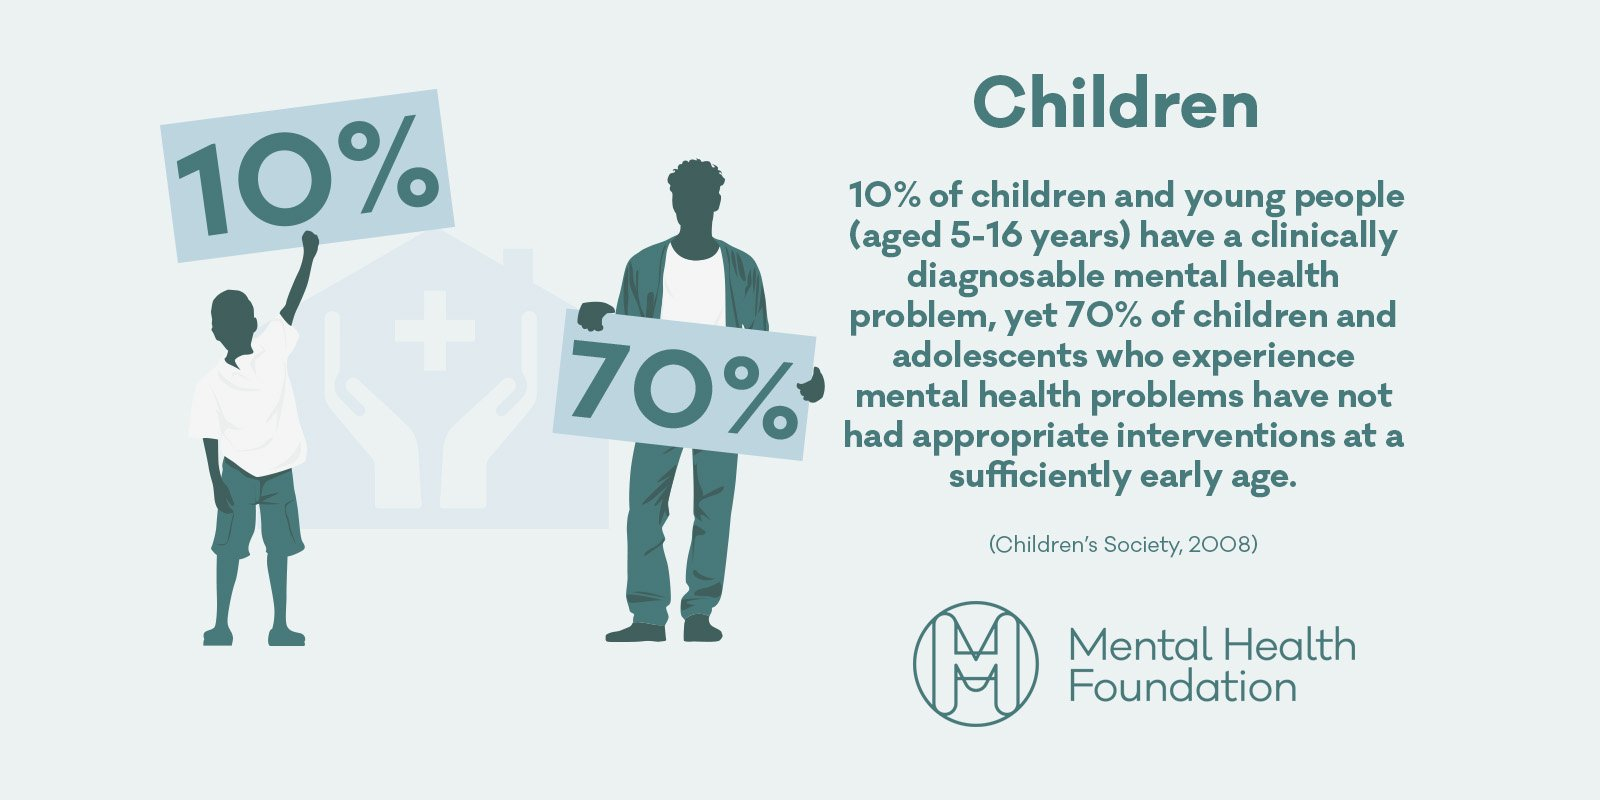 Children's mental health